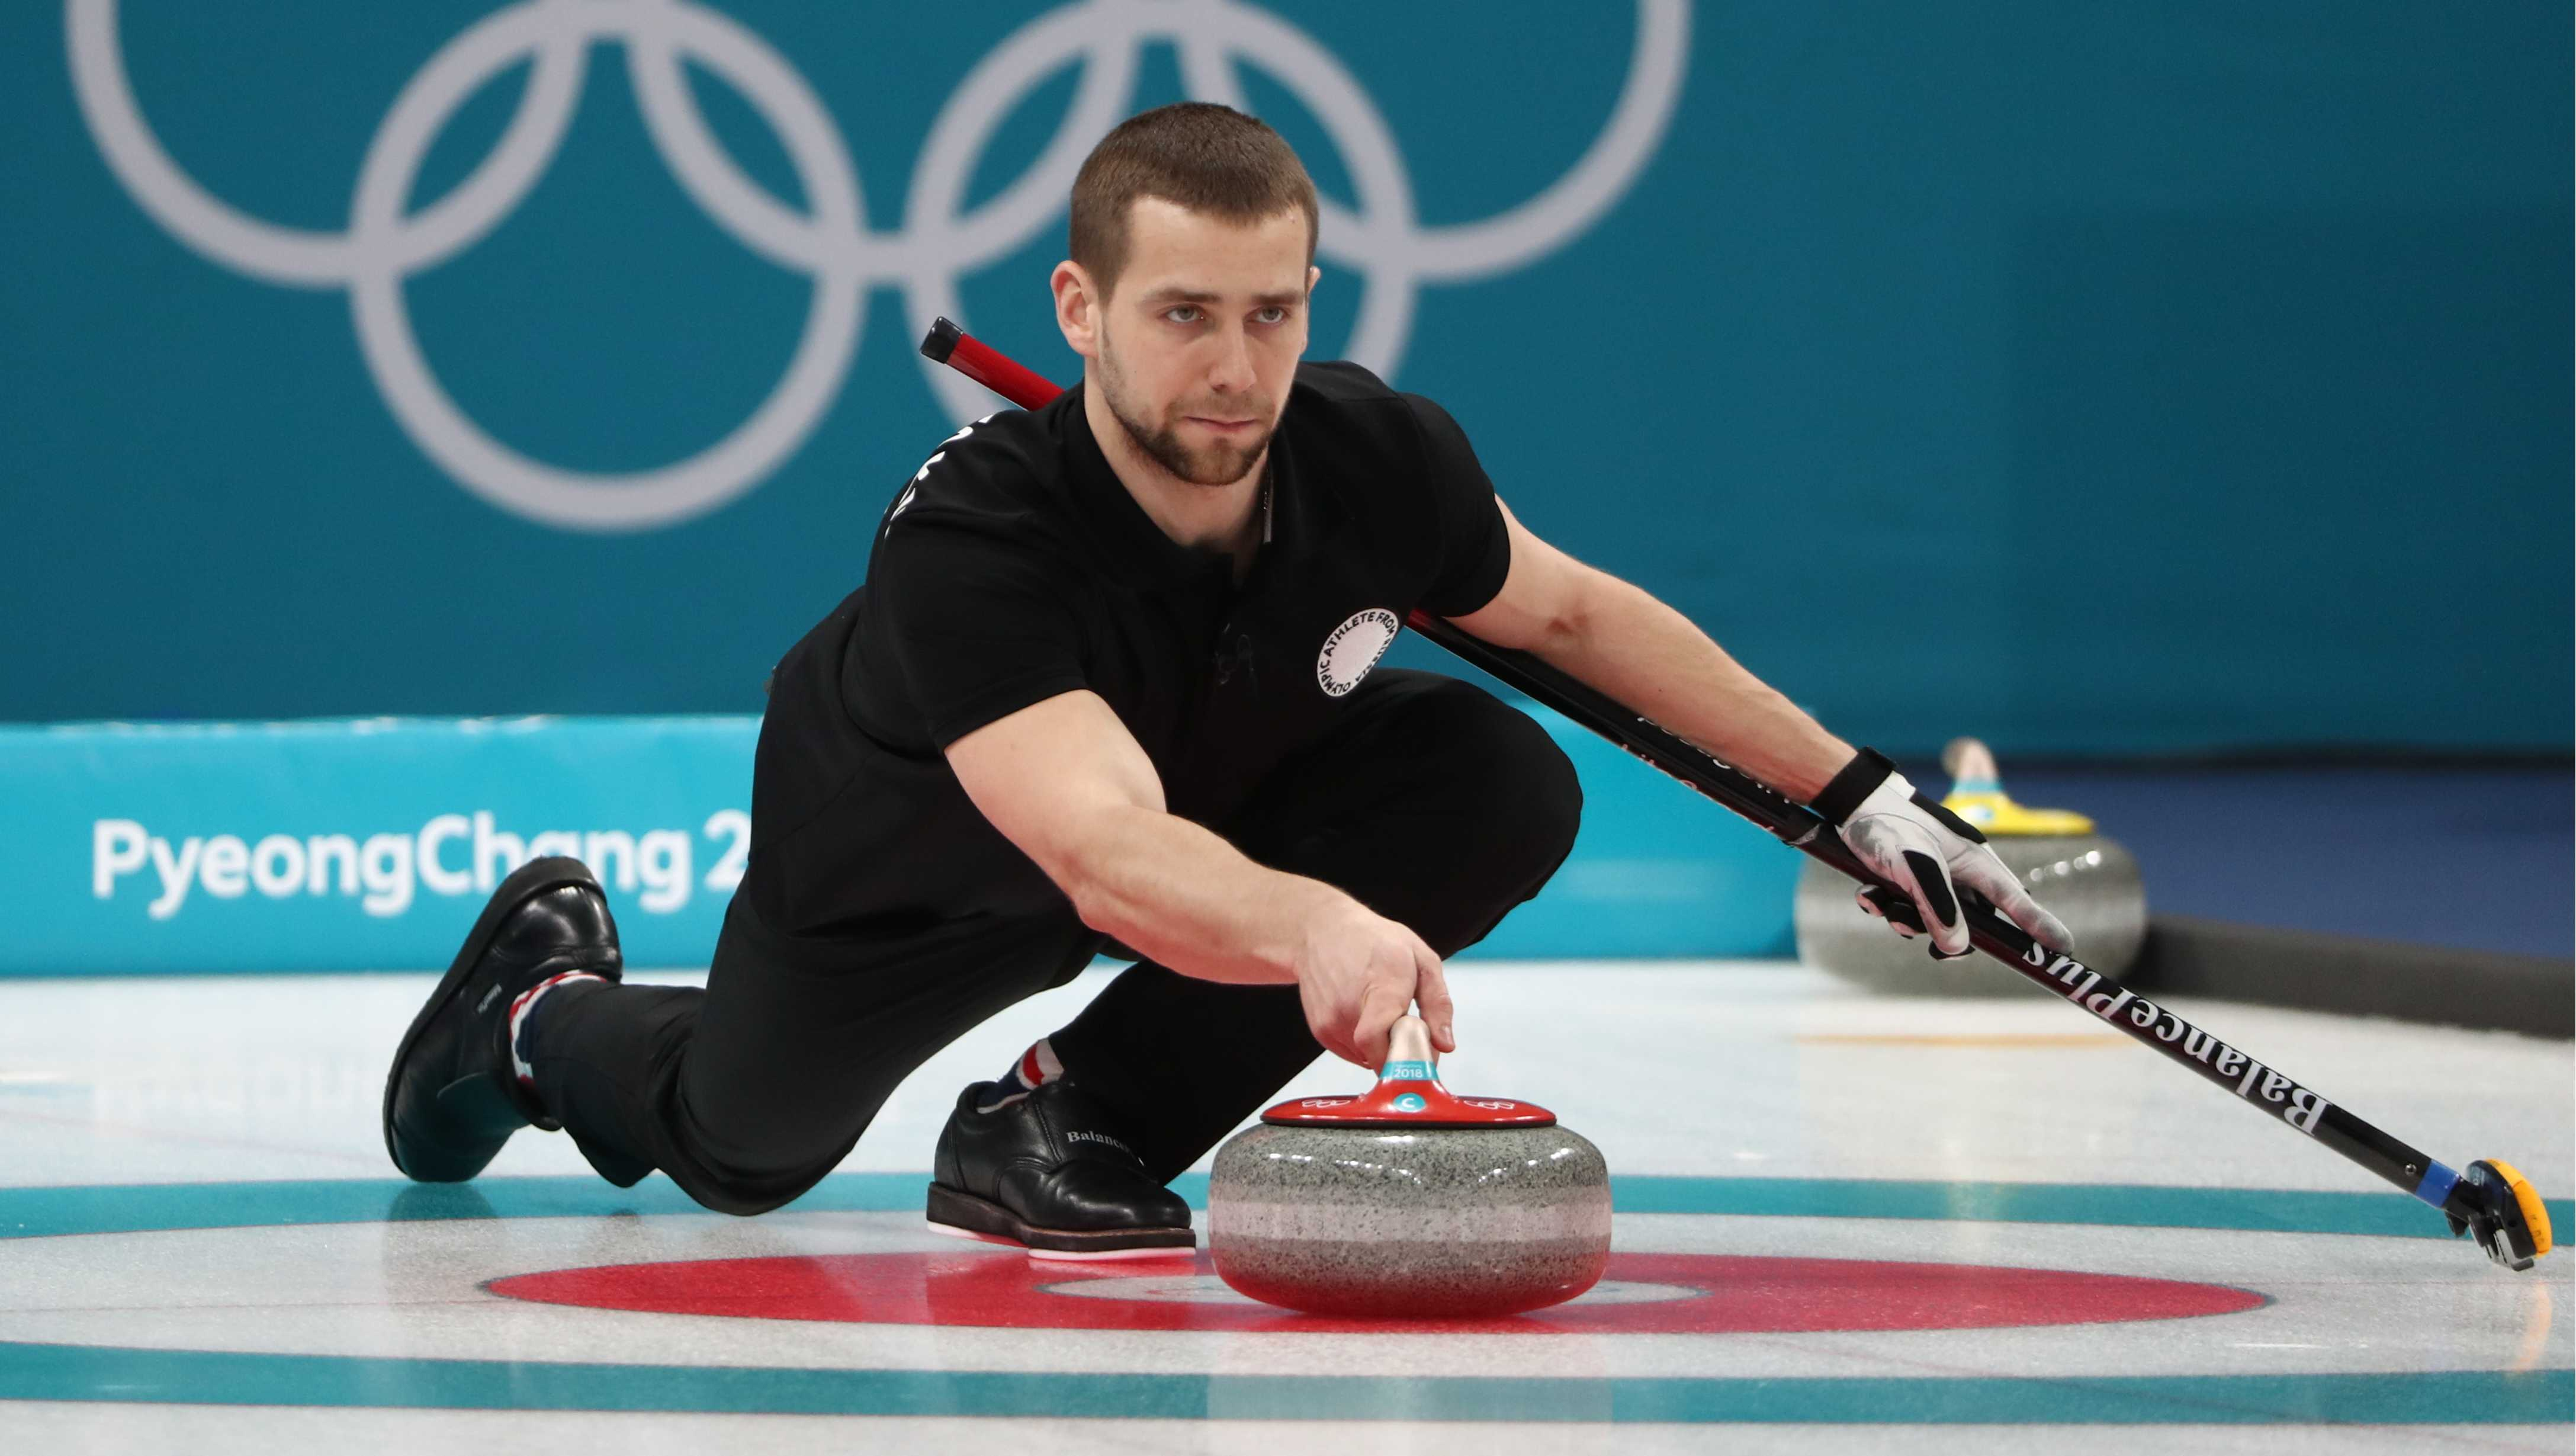 Curler Alexander Krushelnitsky, Olympic Athlete from Russia, delivers a stone in the mixed doubles curling bronze medal match with Anastasia Bryzgalova against Norway's Kristin Skaslien and Magnus Nedregotten during the 2018 Winter Olympic Games.